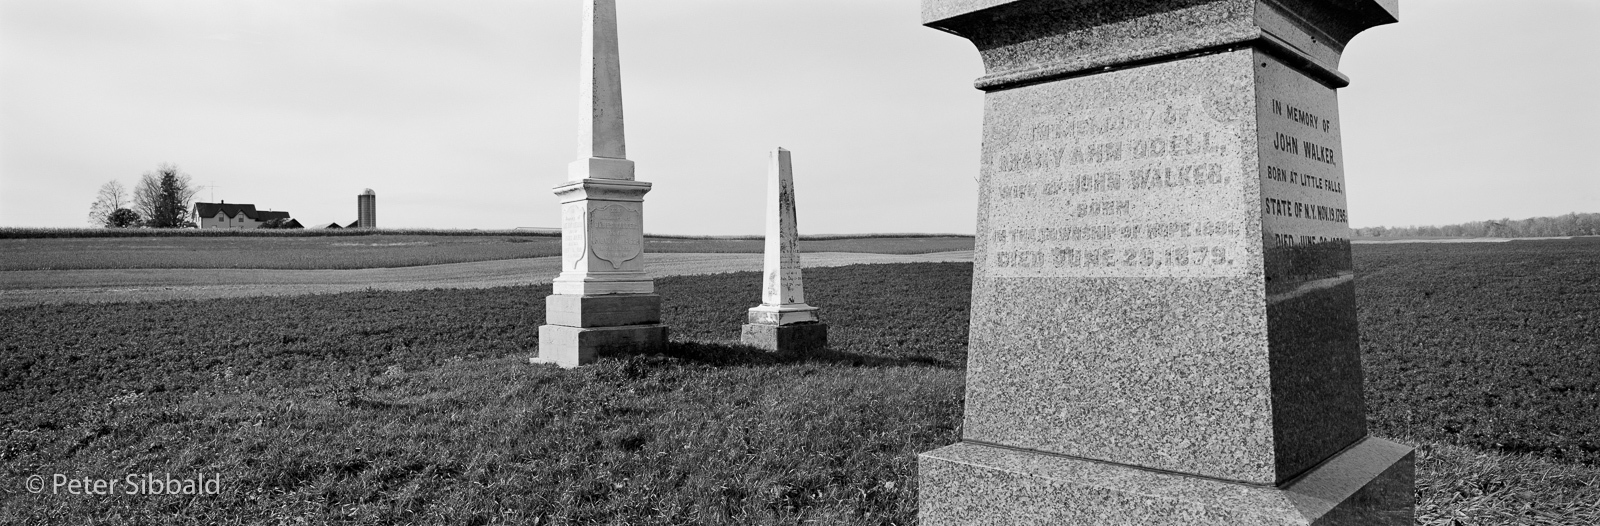 "Welcome, Hope Township, Northumberland County, Ontario. Approximately 43°58'11.24″N 78°21'39.06″W, facing Northwest, circa November 3, 2005 The pioneer cemetery of the United Empire Loyalist family of John Walker lies on the edge of a farm field in what the Neptis Foundation calls the ""Unprotected Countryside"", land that is immediately outside Ontario's Greenbelt and at greater risk of development pressure due to leapfrogging. In Ontario's past, pioneer graves have been frequently disinterred and consolidated in other locations disassociating history from its place."